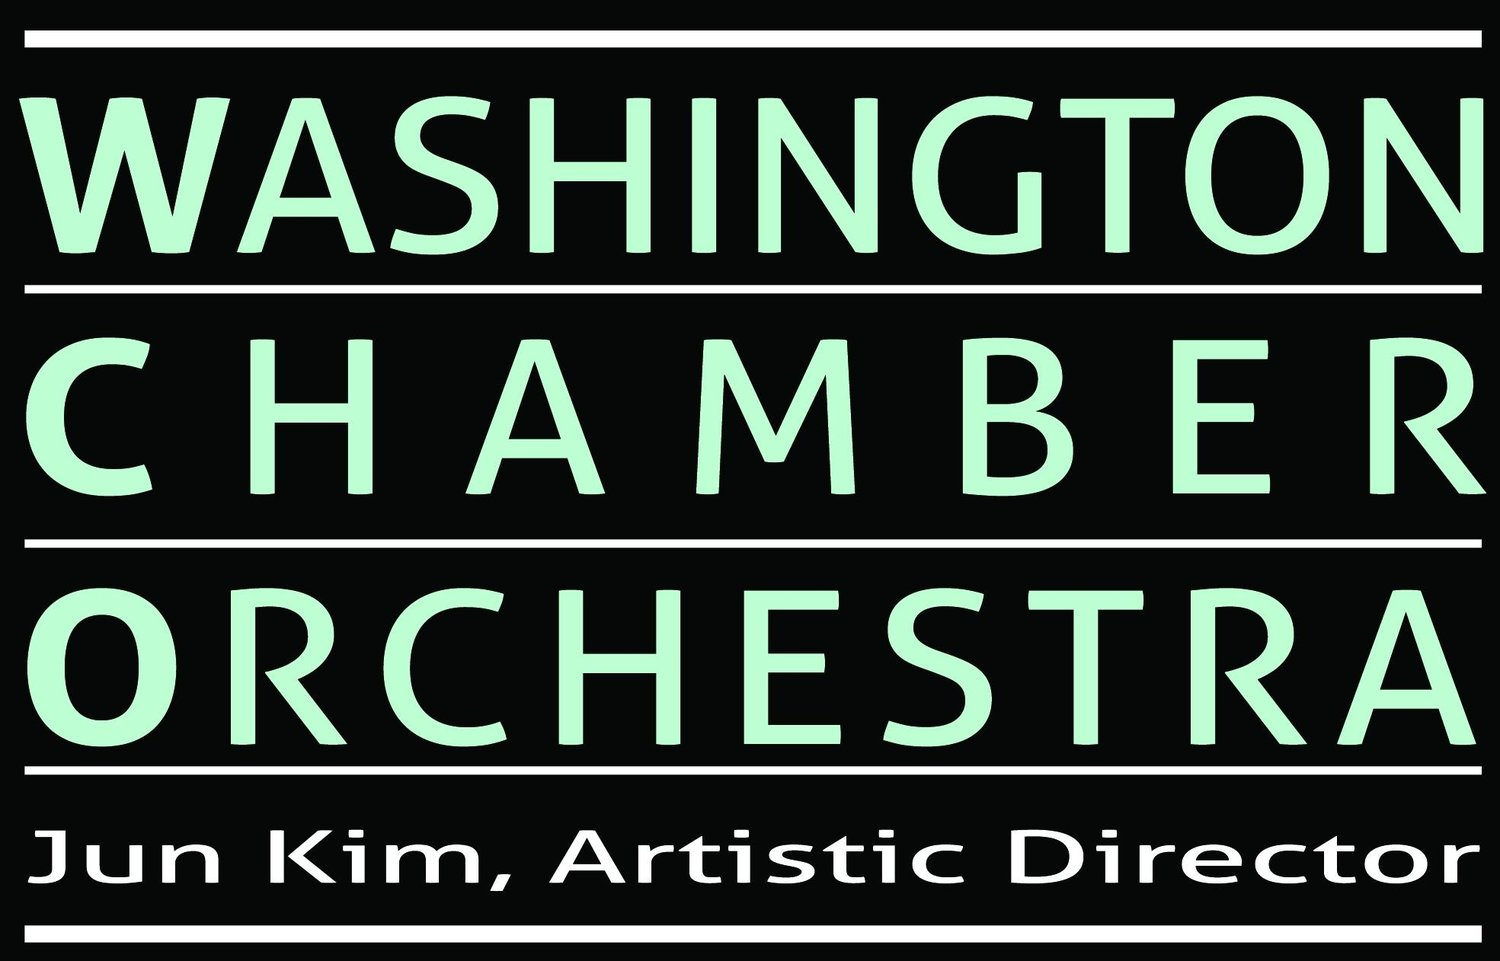 The WASHINGTON CHAMBER ORCHESTRA